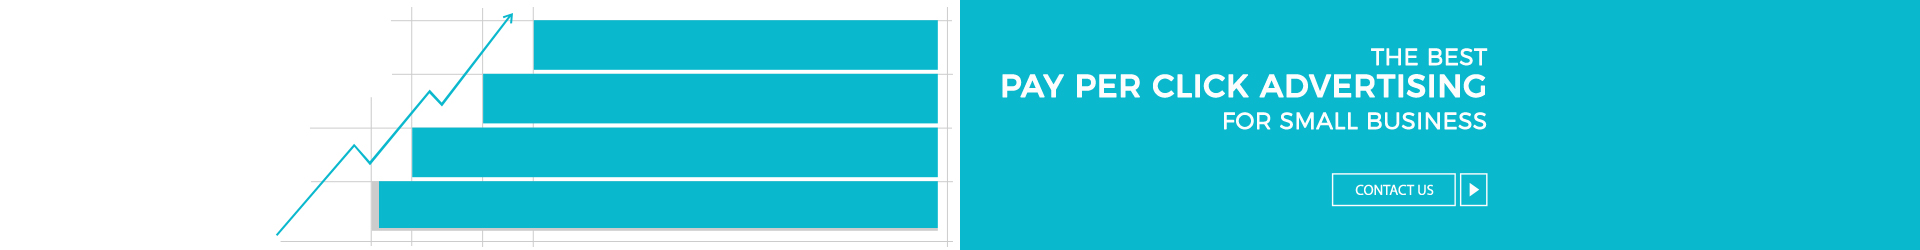 PPC-1 Pay Per Click Advertising